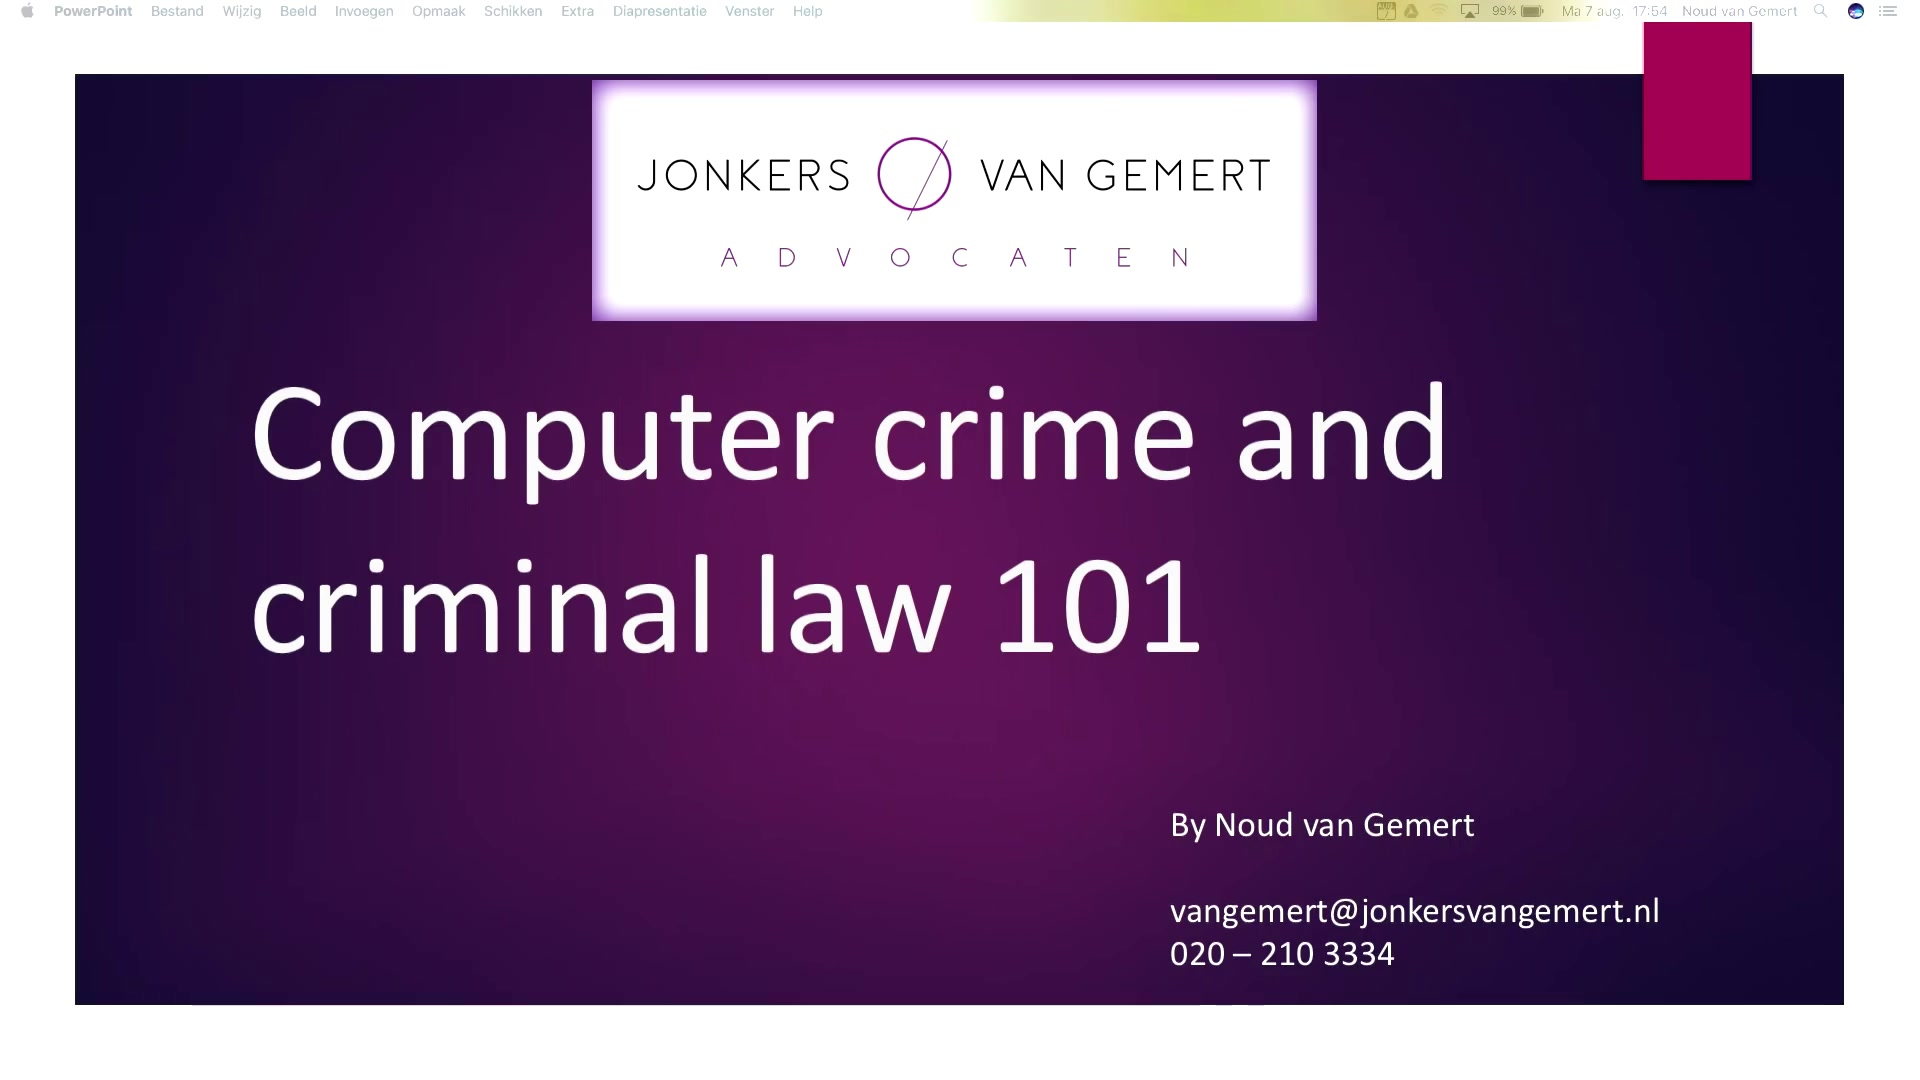 the computer crime law in ireland Irish law also falls down on the question of who can have their phones tapped contrary to international standards, there are no safeguards on phone tapping targeting lawyers, journalists or parliamentarians.